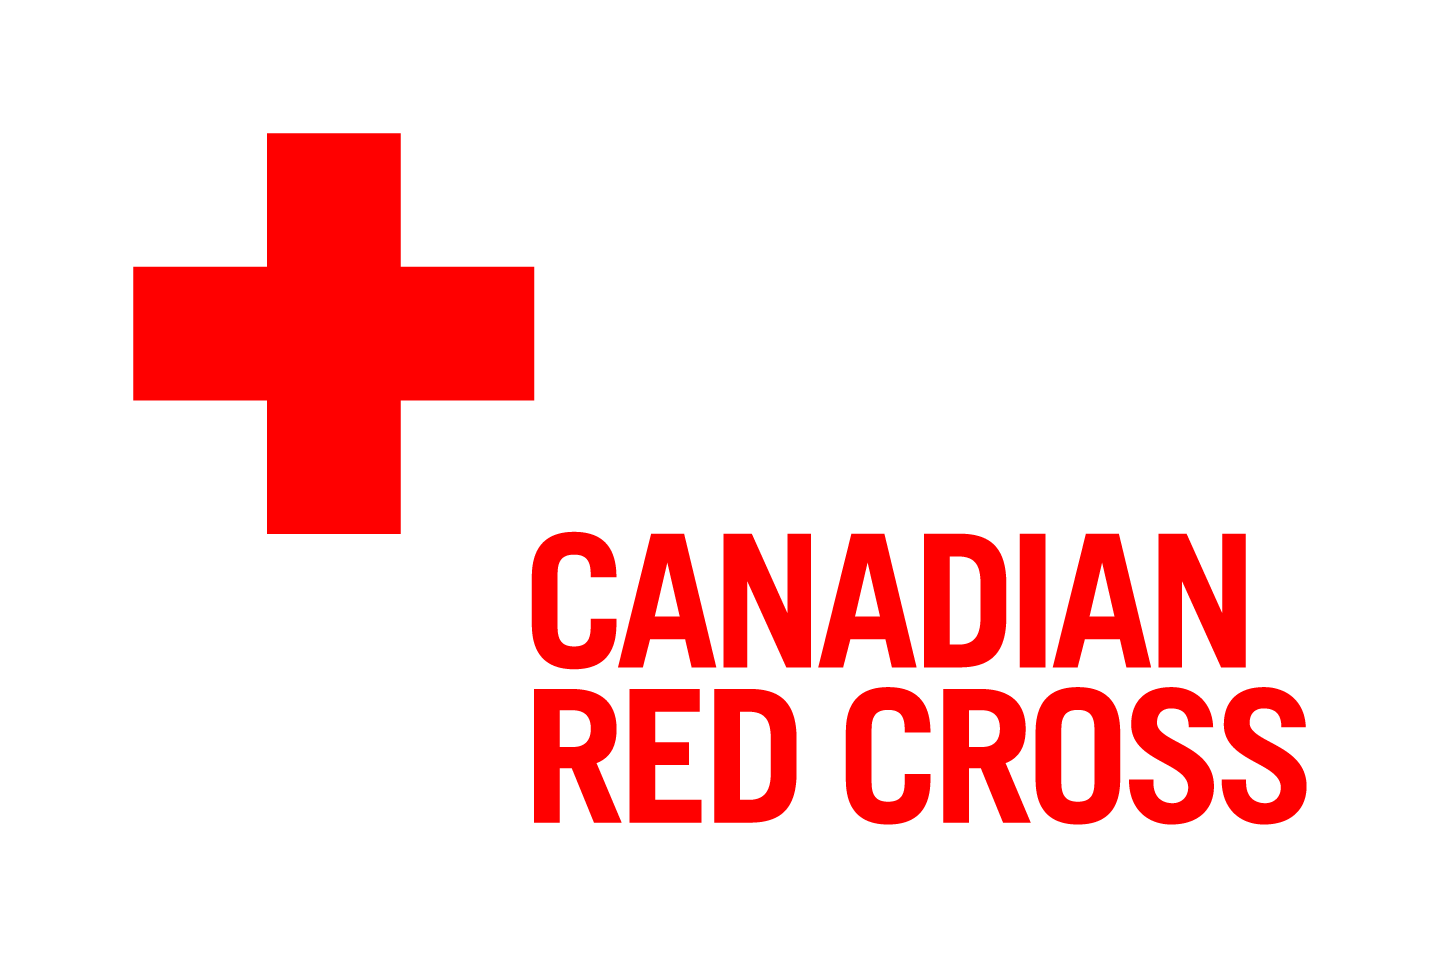 Red Cross clipart emergency The conference national Stroke life